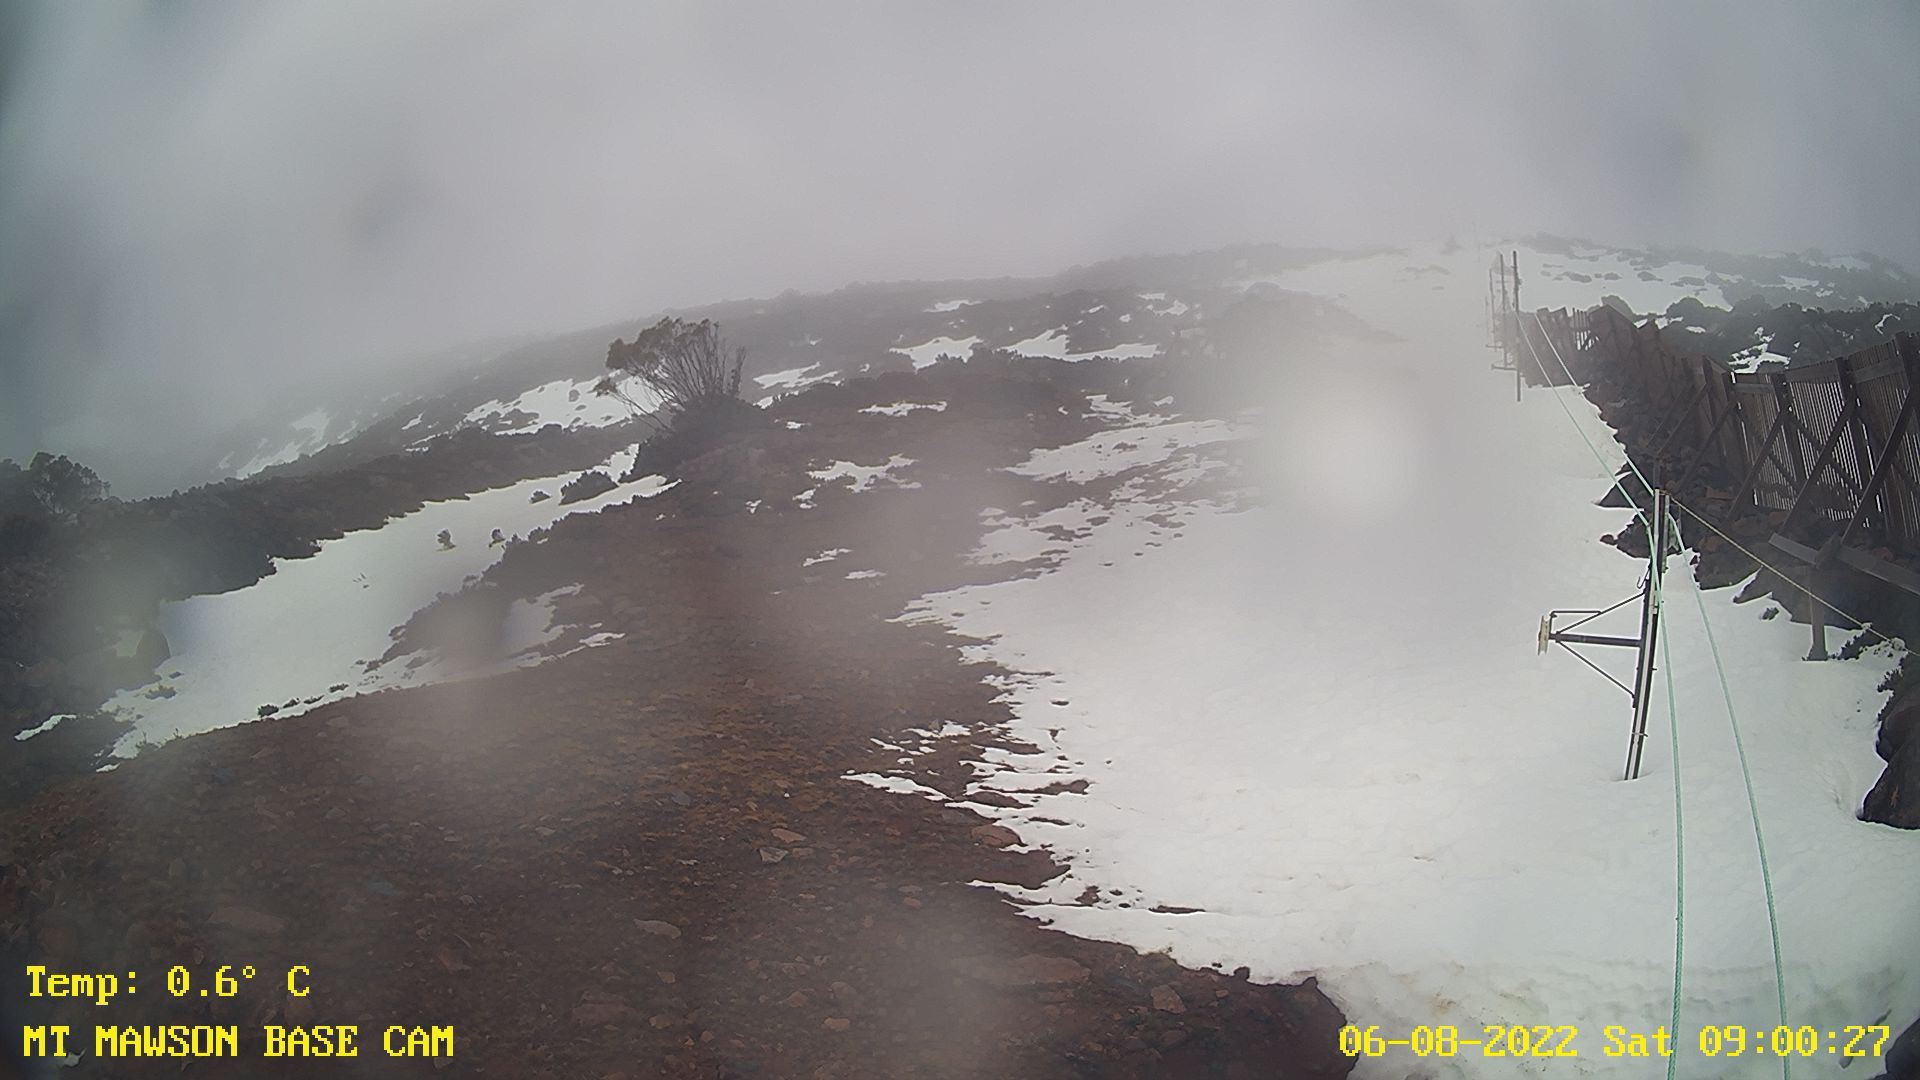 latest image from the mount mawson base cam